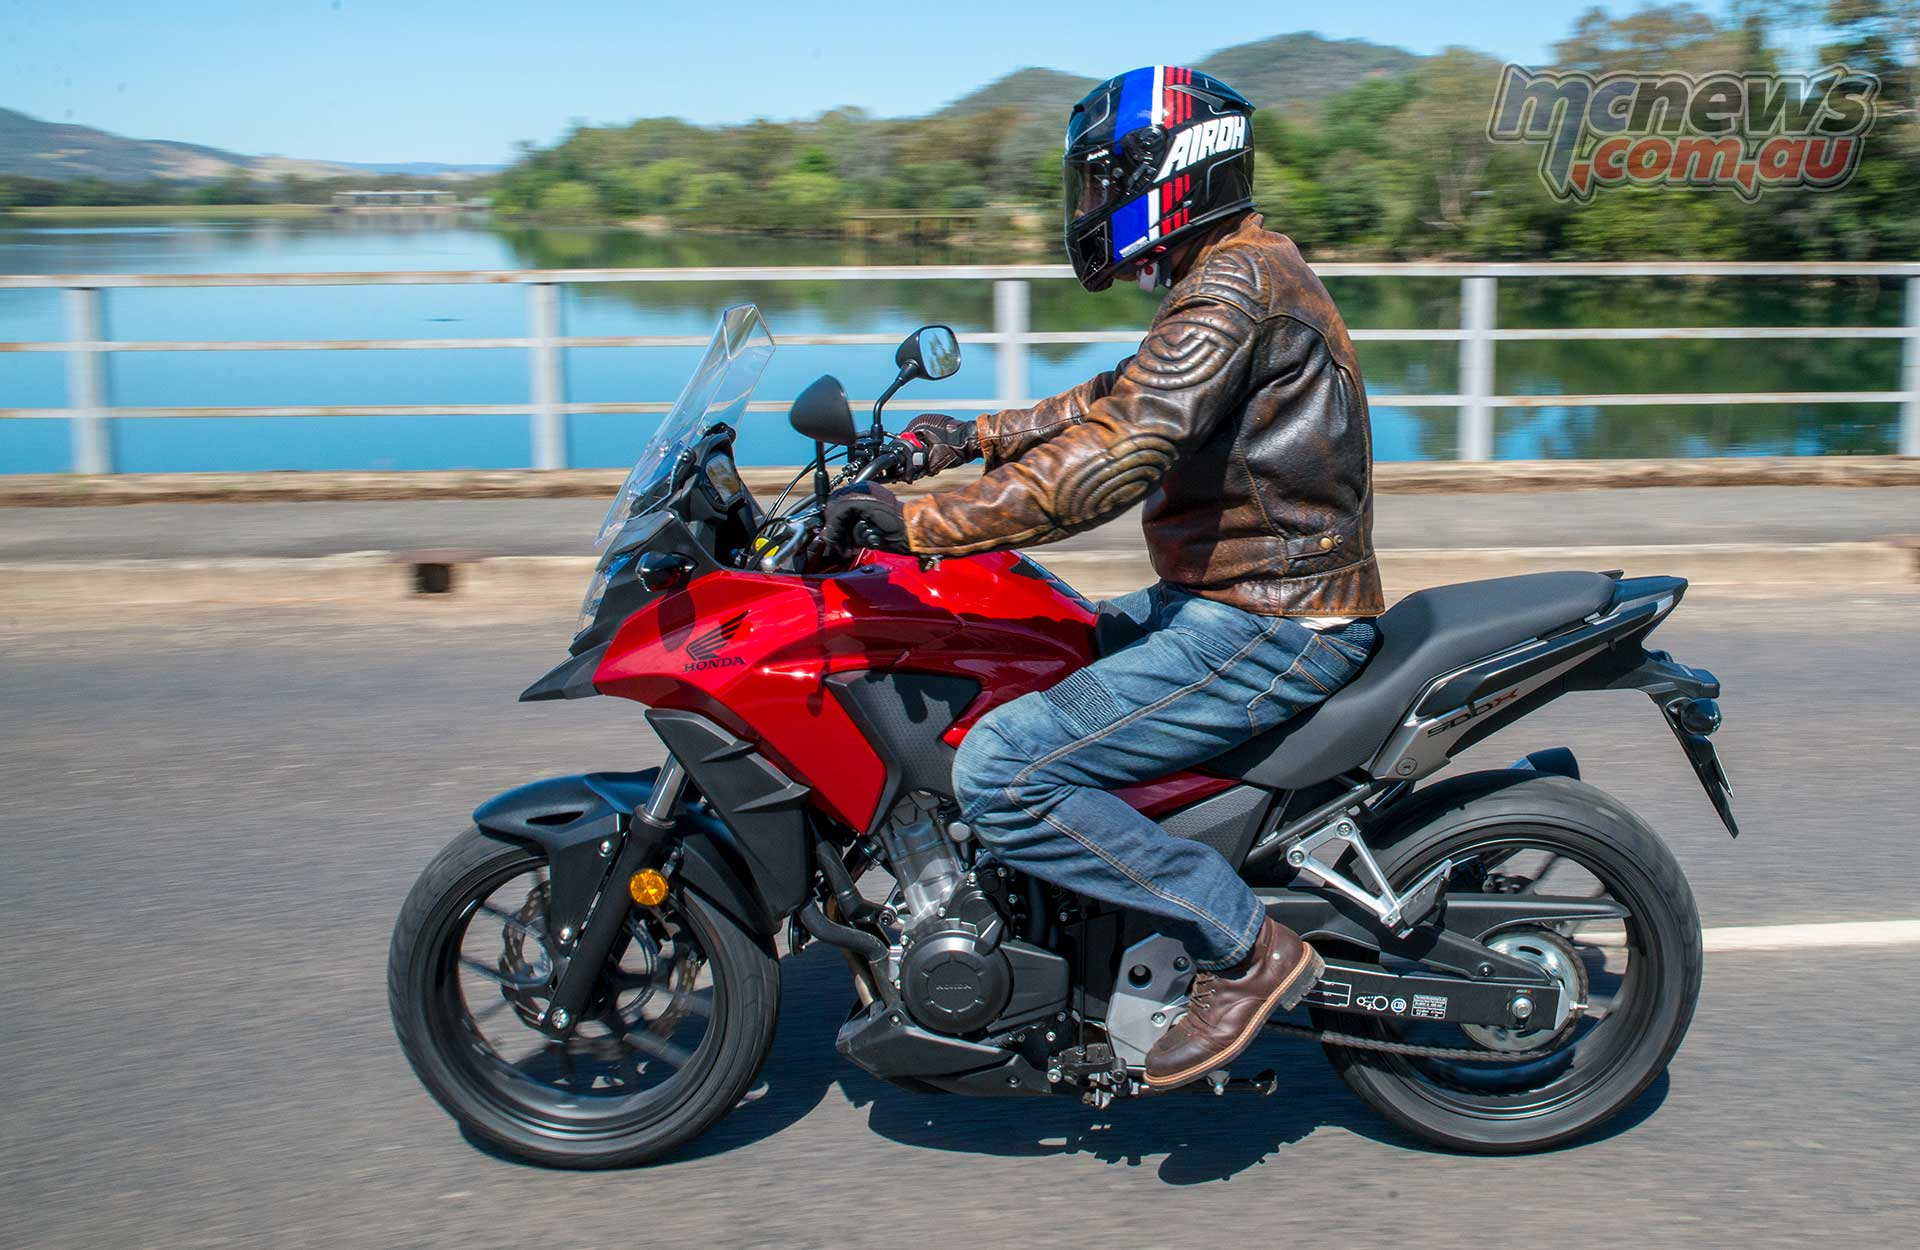 Honda Cb500x Review Motorcycle Tests Mcnewscomau